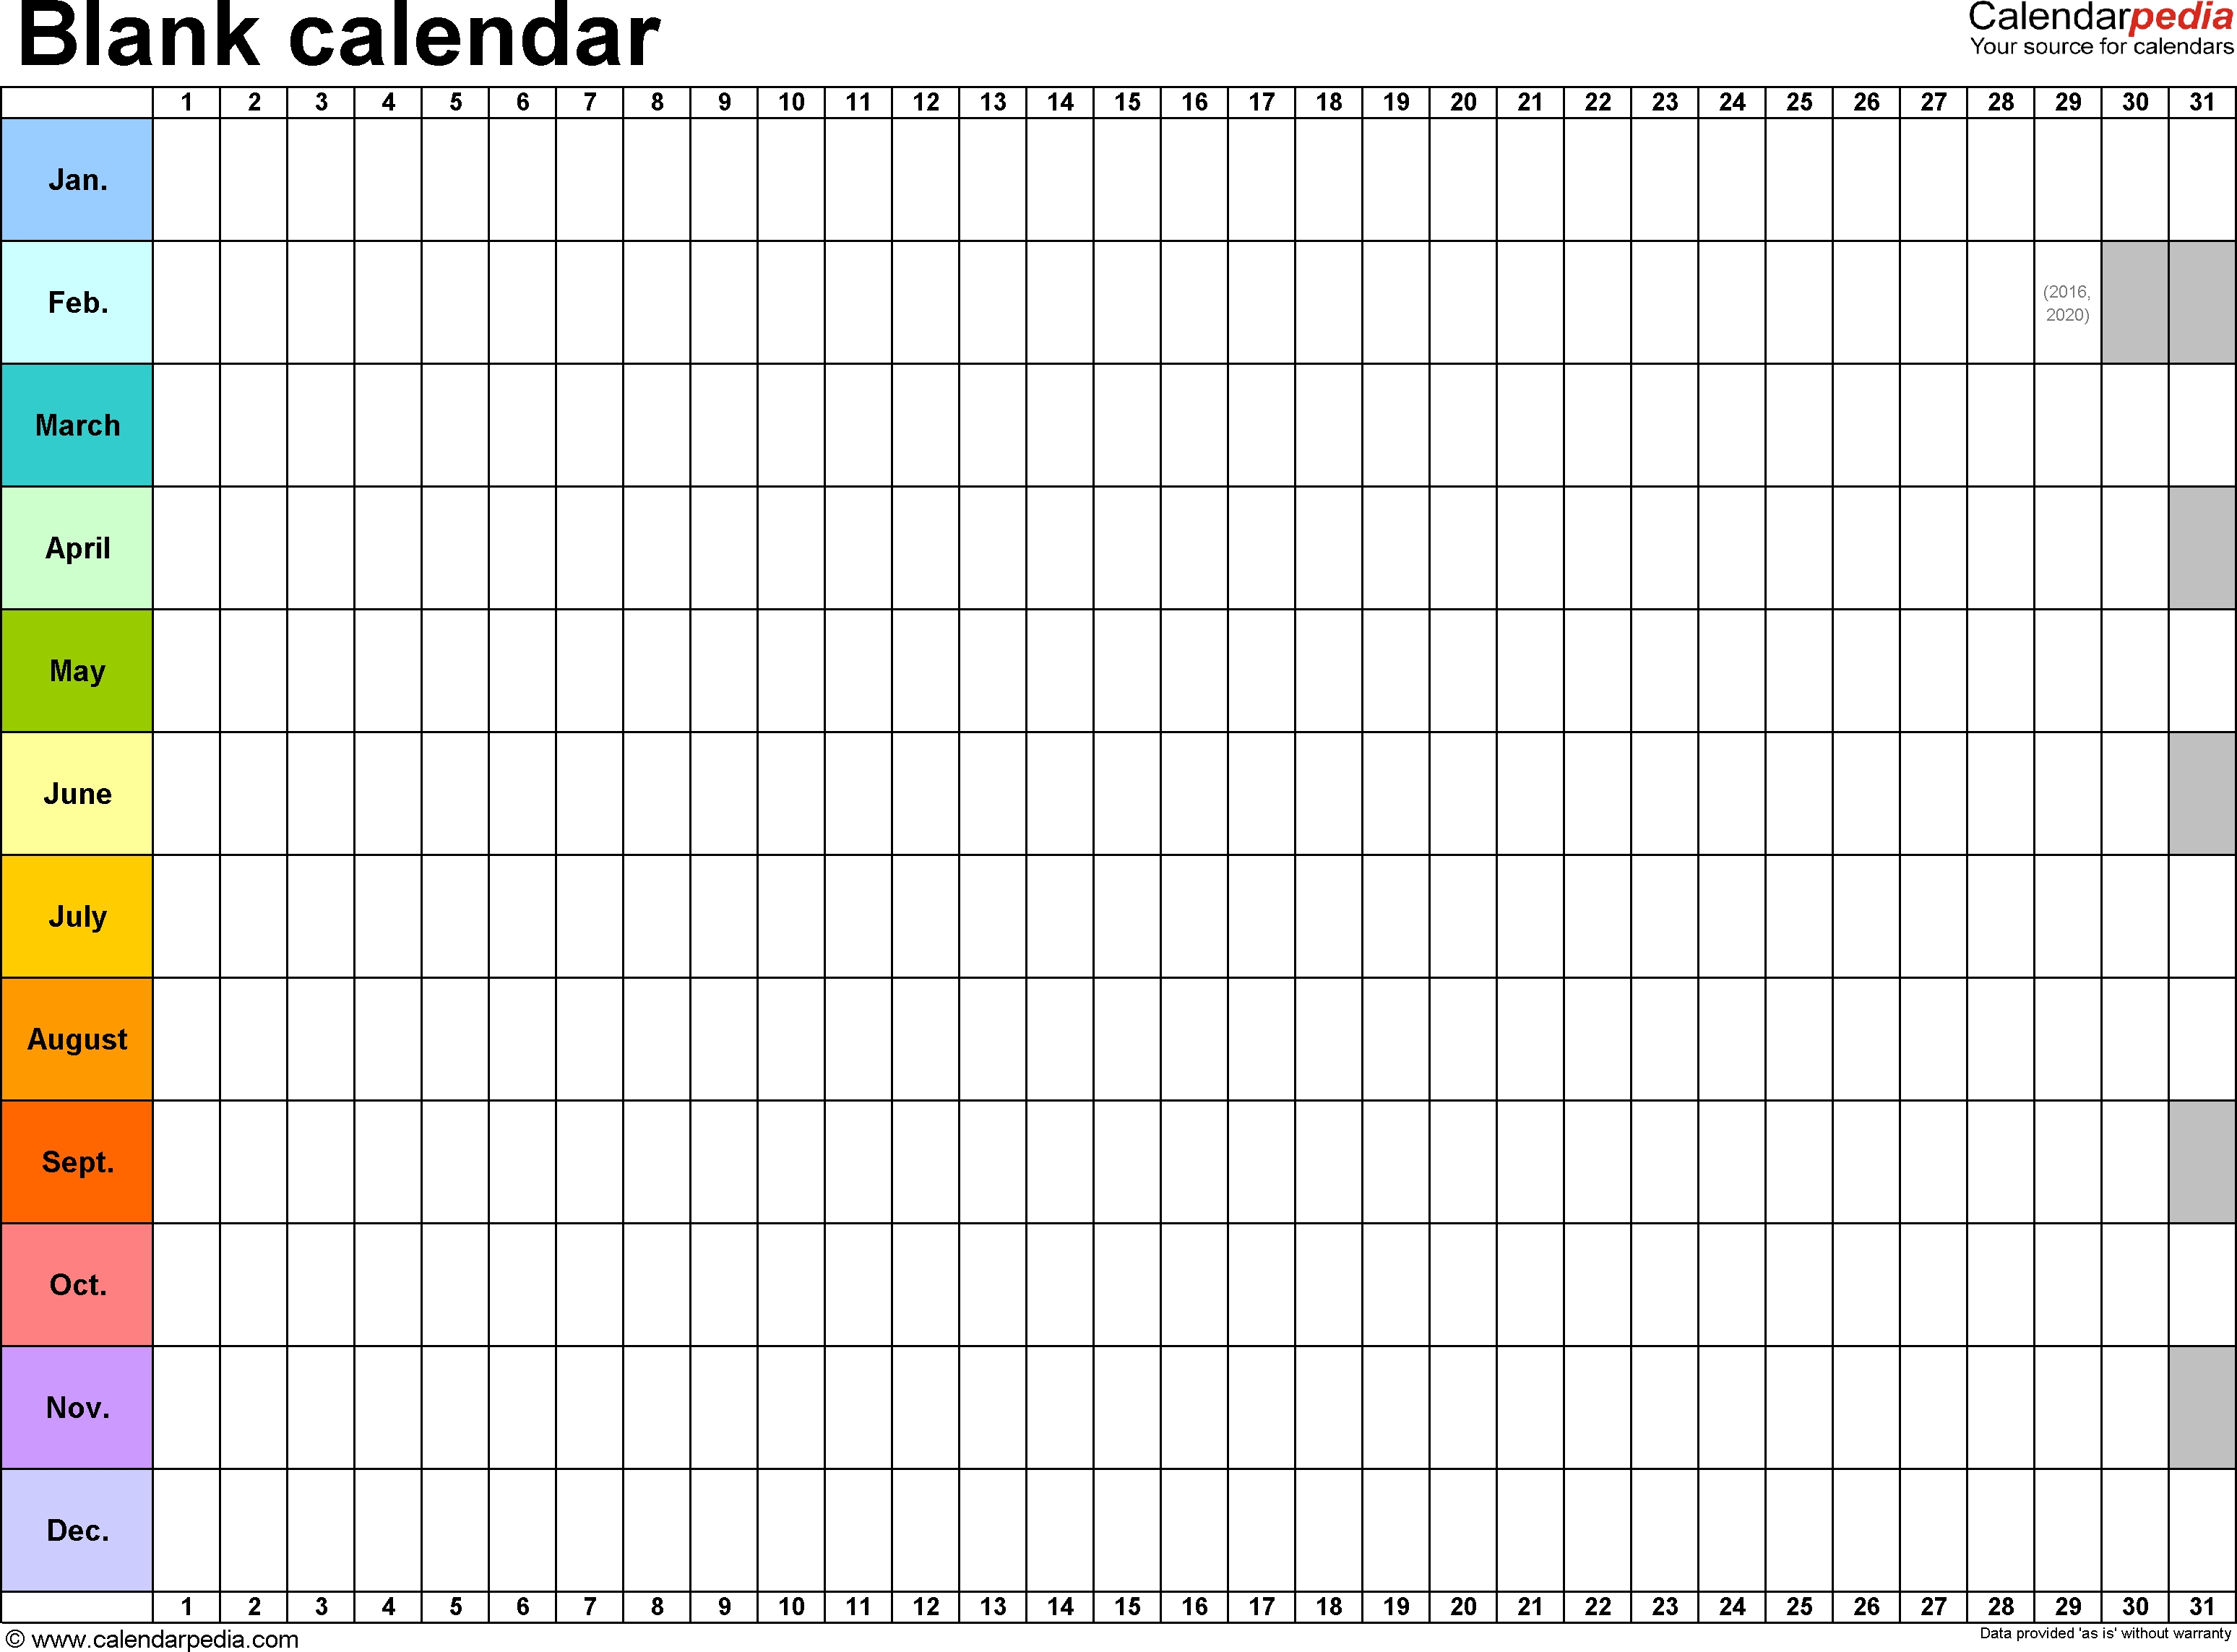 Blank Calendar - 9 Free Printable Microsoft Word Templates for Template For Calendar With 12 Months On One Page